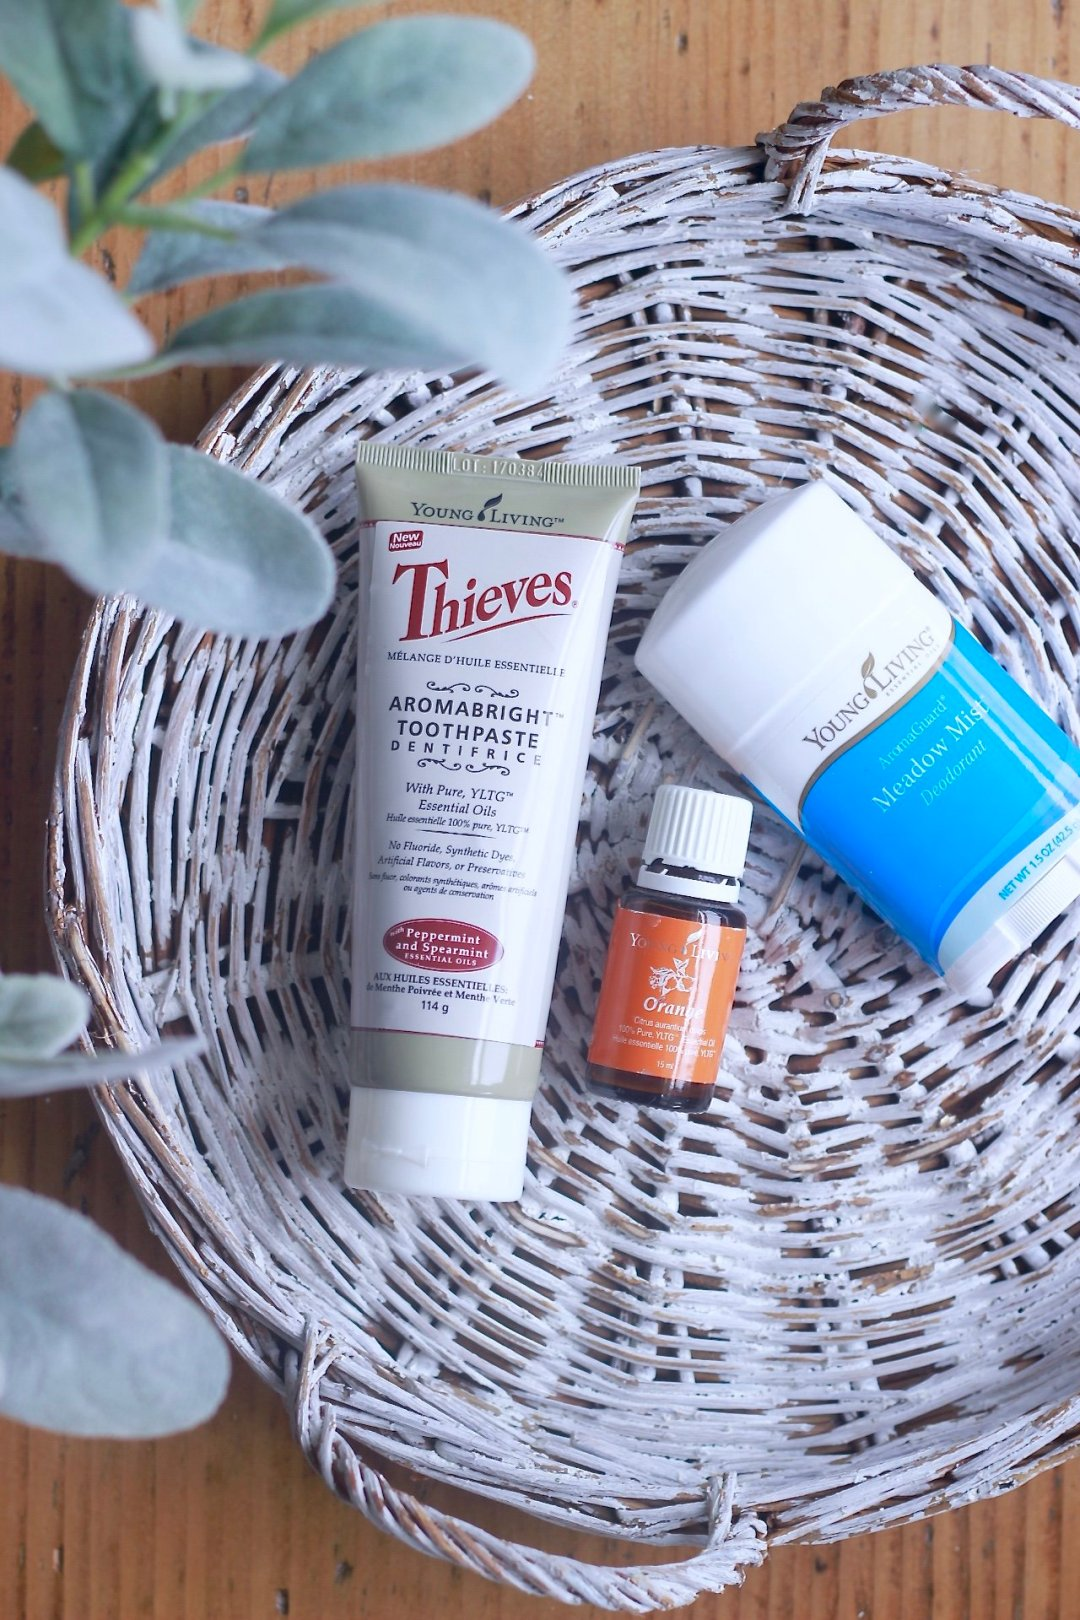 Living Life Less Toxic, Thieves Aromabright toothpaste, Orange Young Living Essential Oil